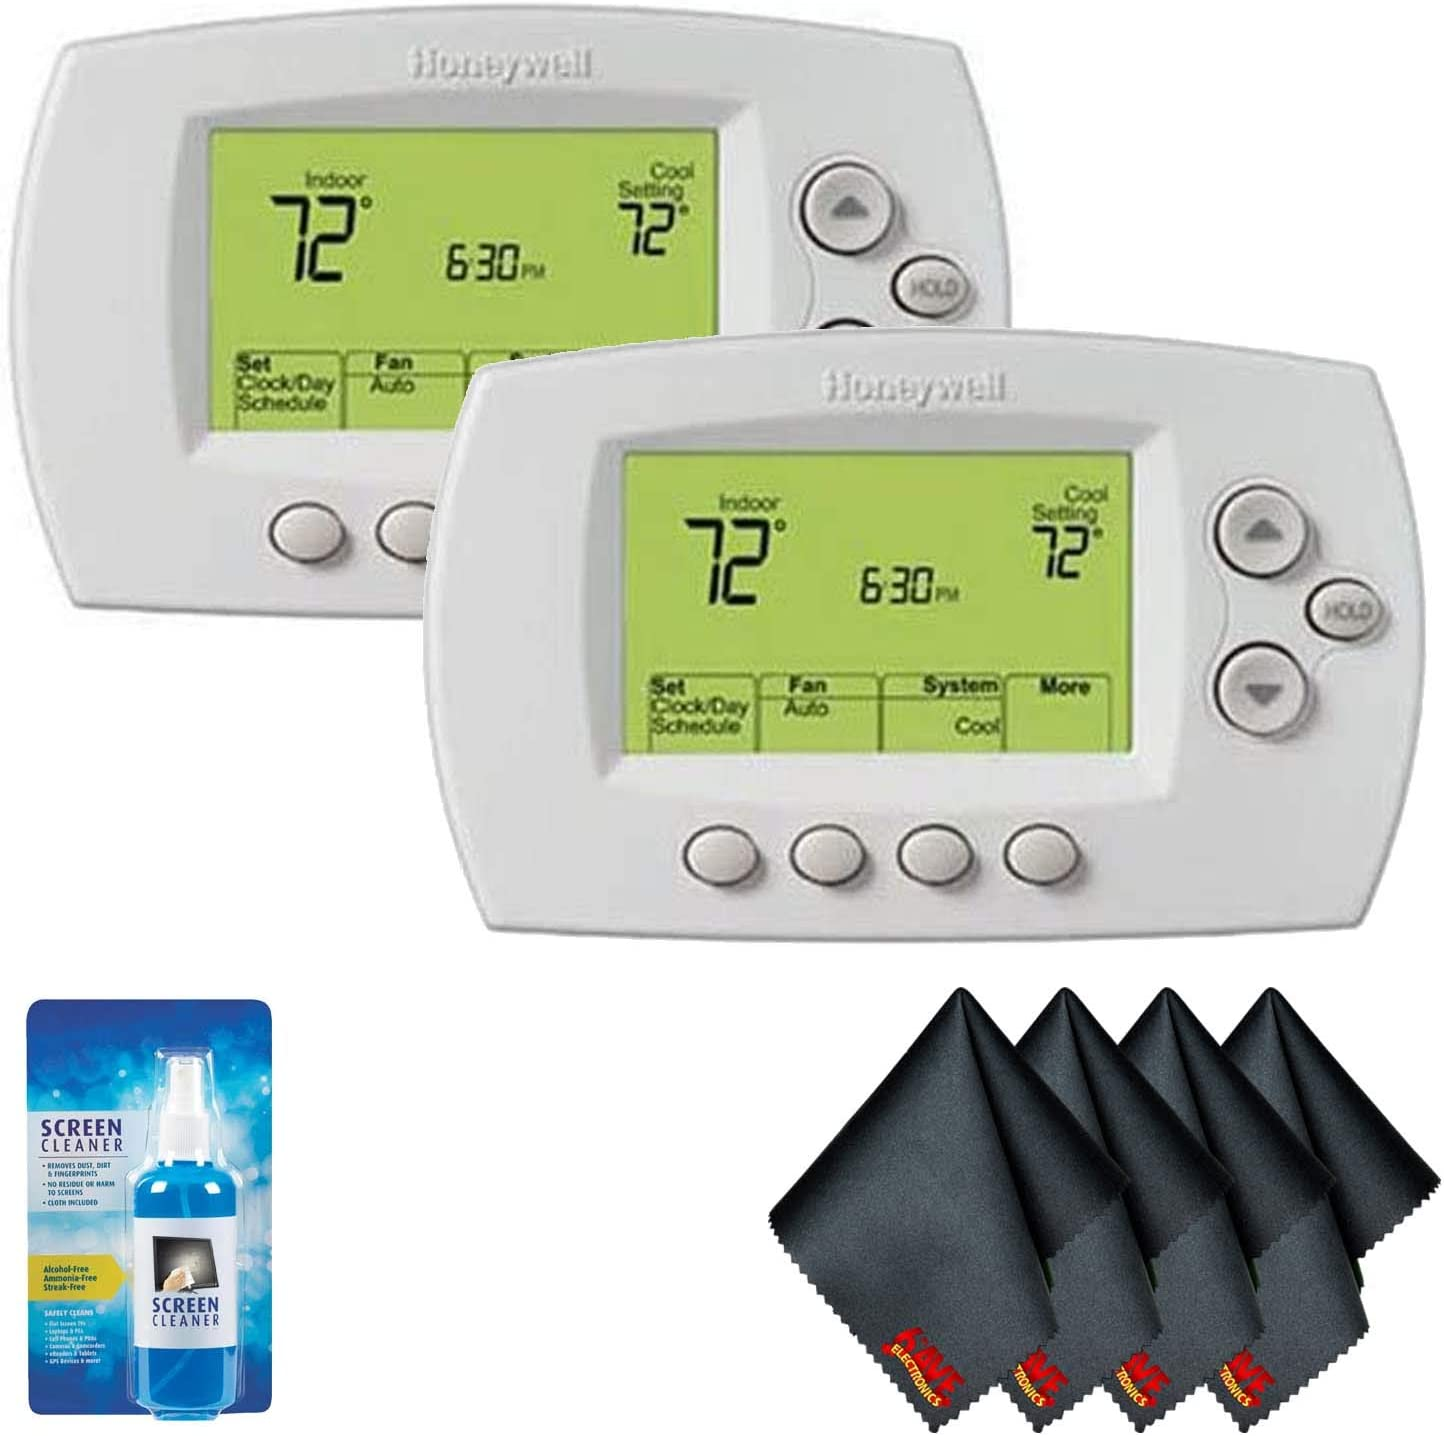 Honeywell RTH6580WF Wi-Fi 7-Day Programmable Thermostat (2-Pack) with Screen Cleaning Kit